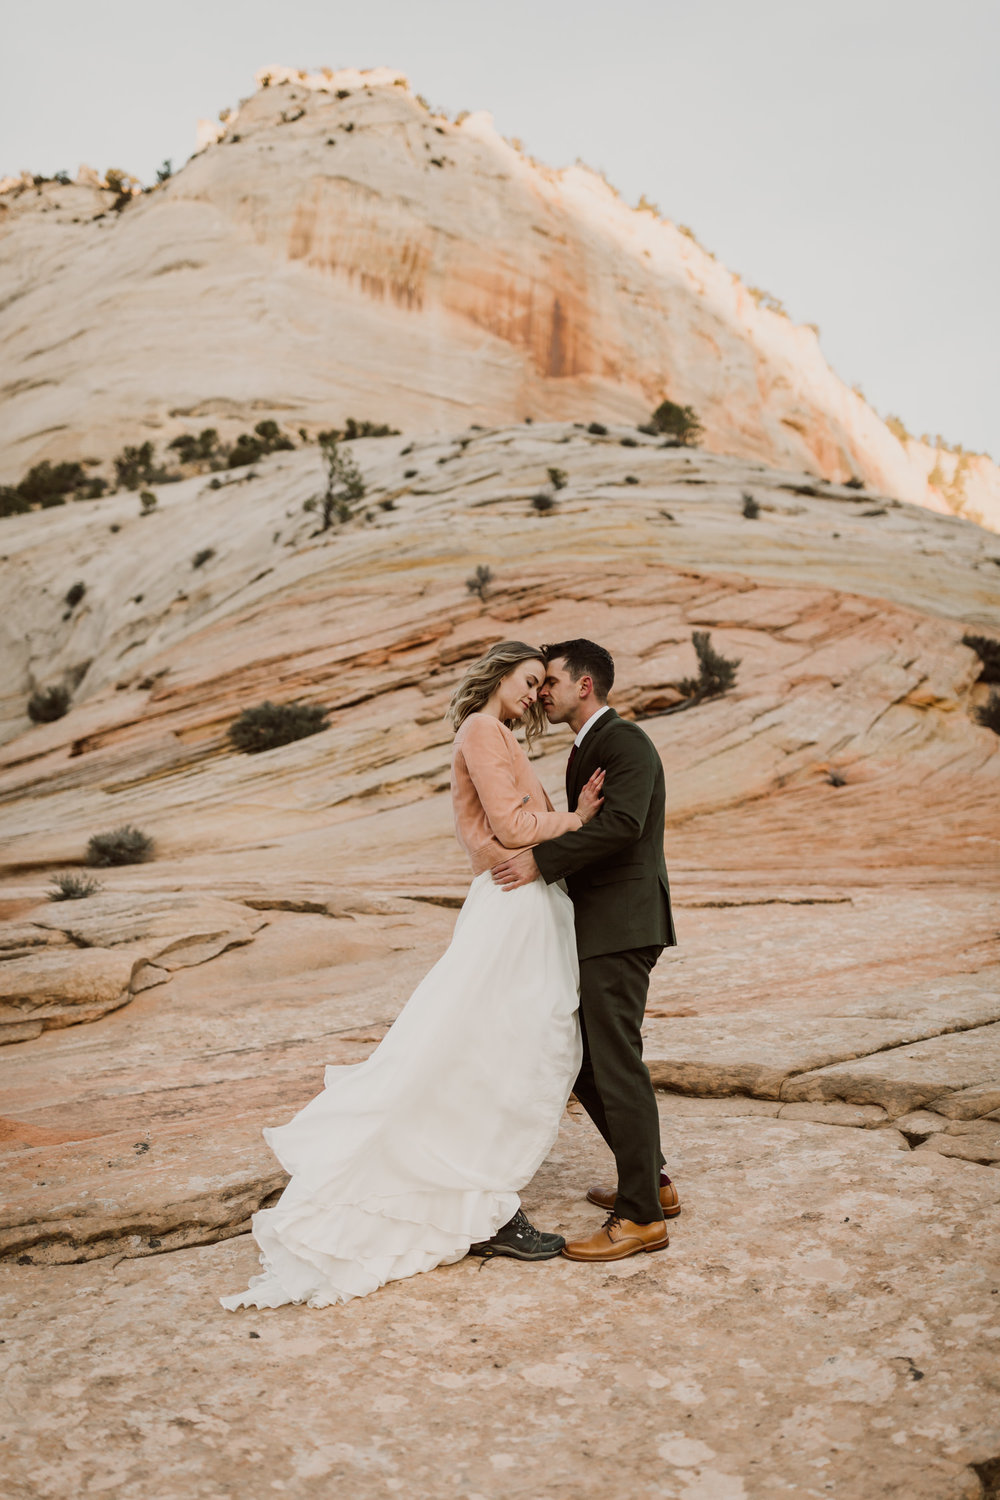 zion-national-park-wedding-44.jpg